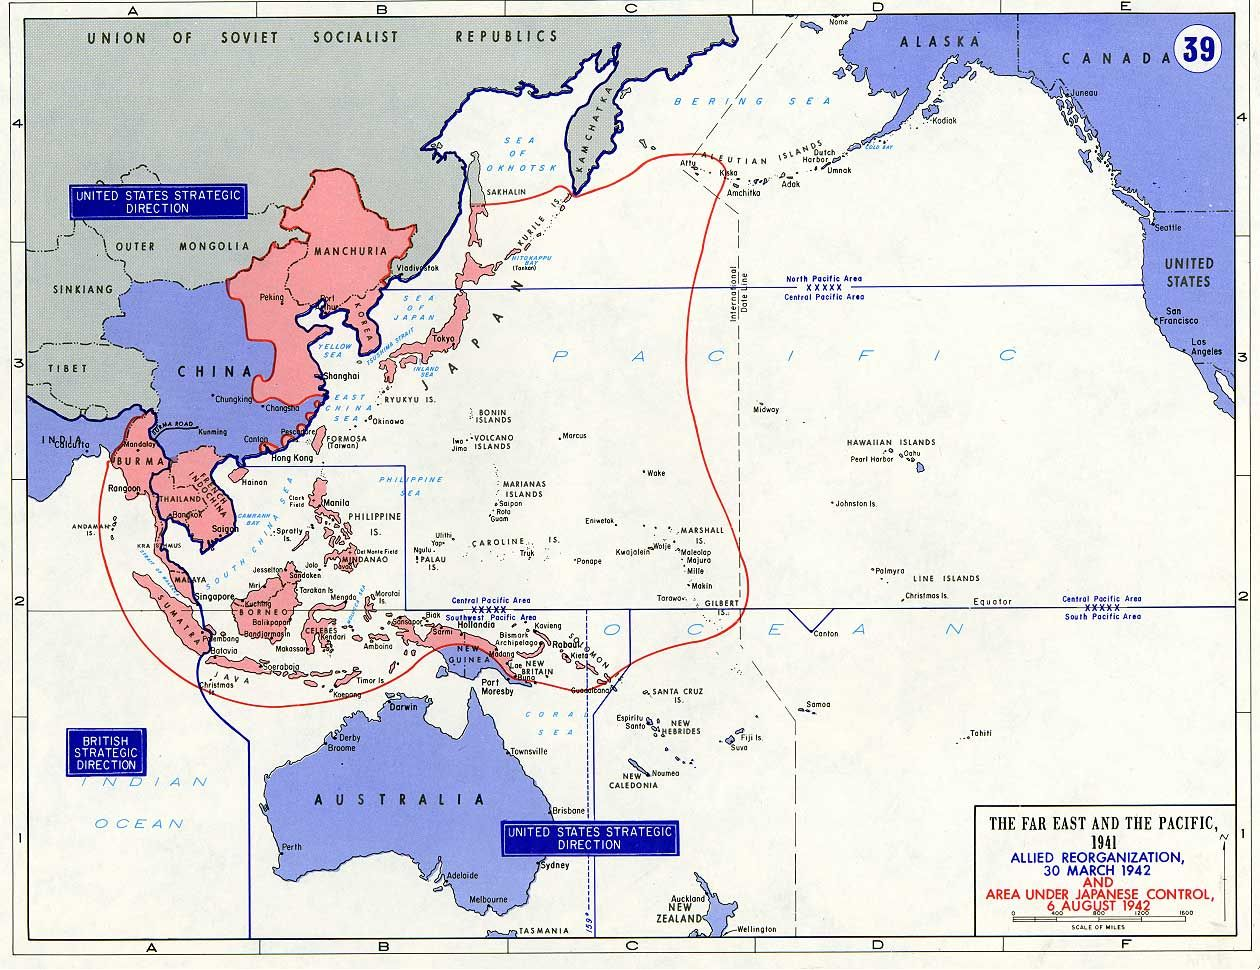 Allied Reorganization 30 March And Area Under